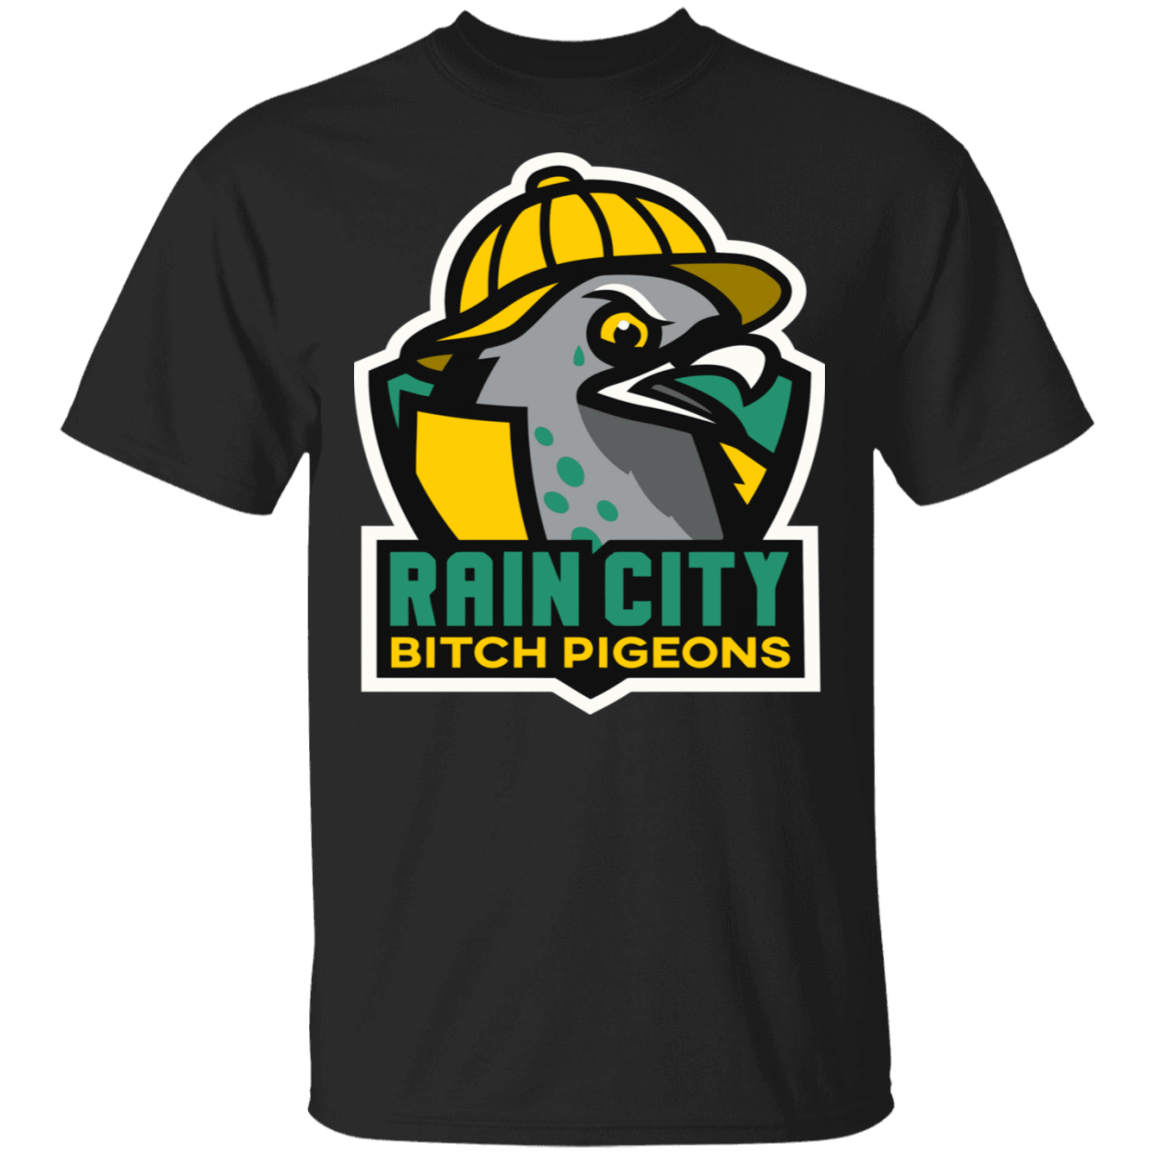 Rain City Bitch Pigeons T-Shirts, Hoodies, Tank 22-113-79271397-252 - Tee Ript